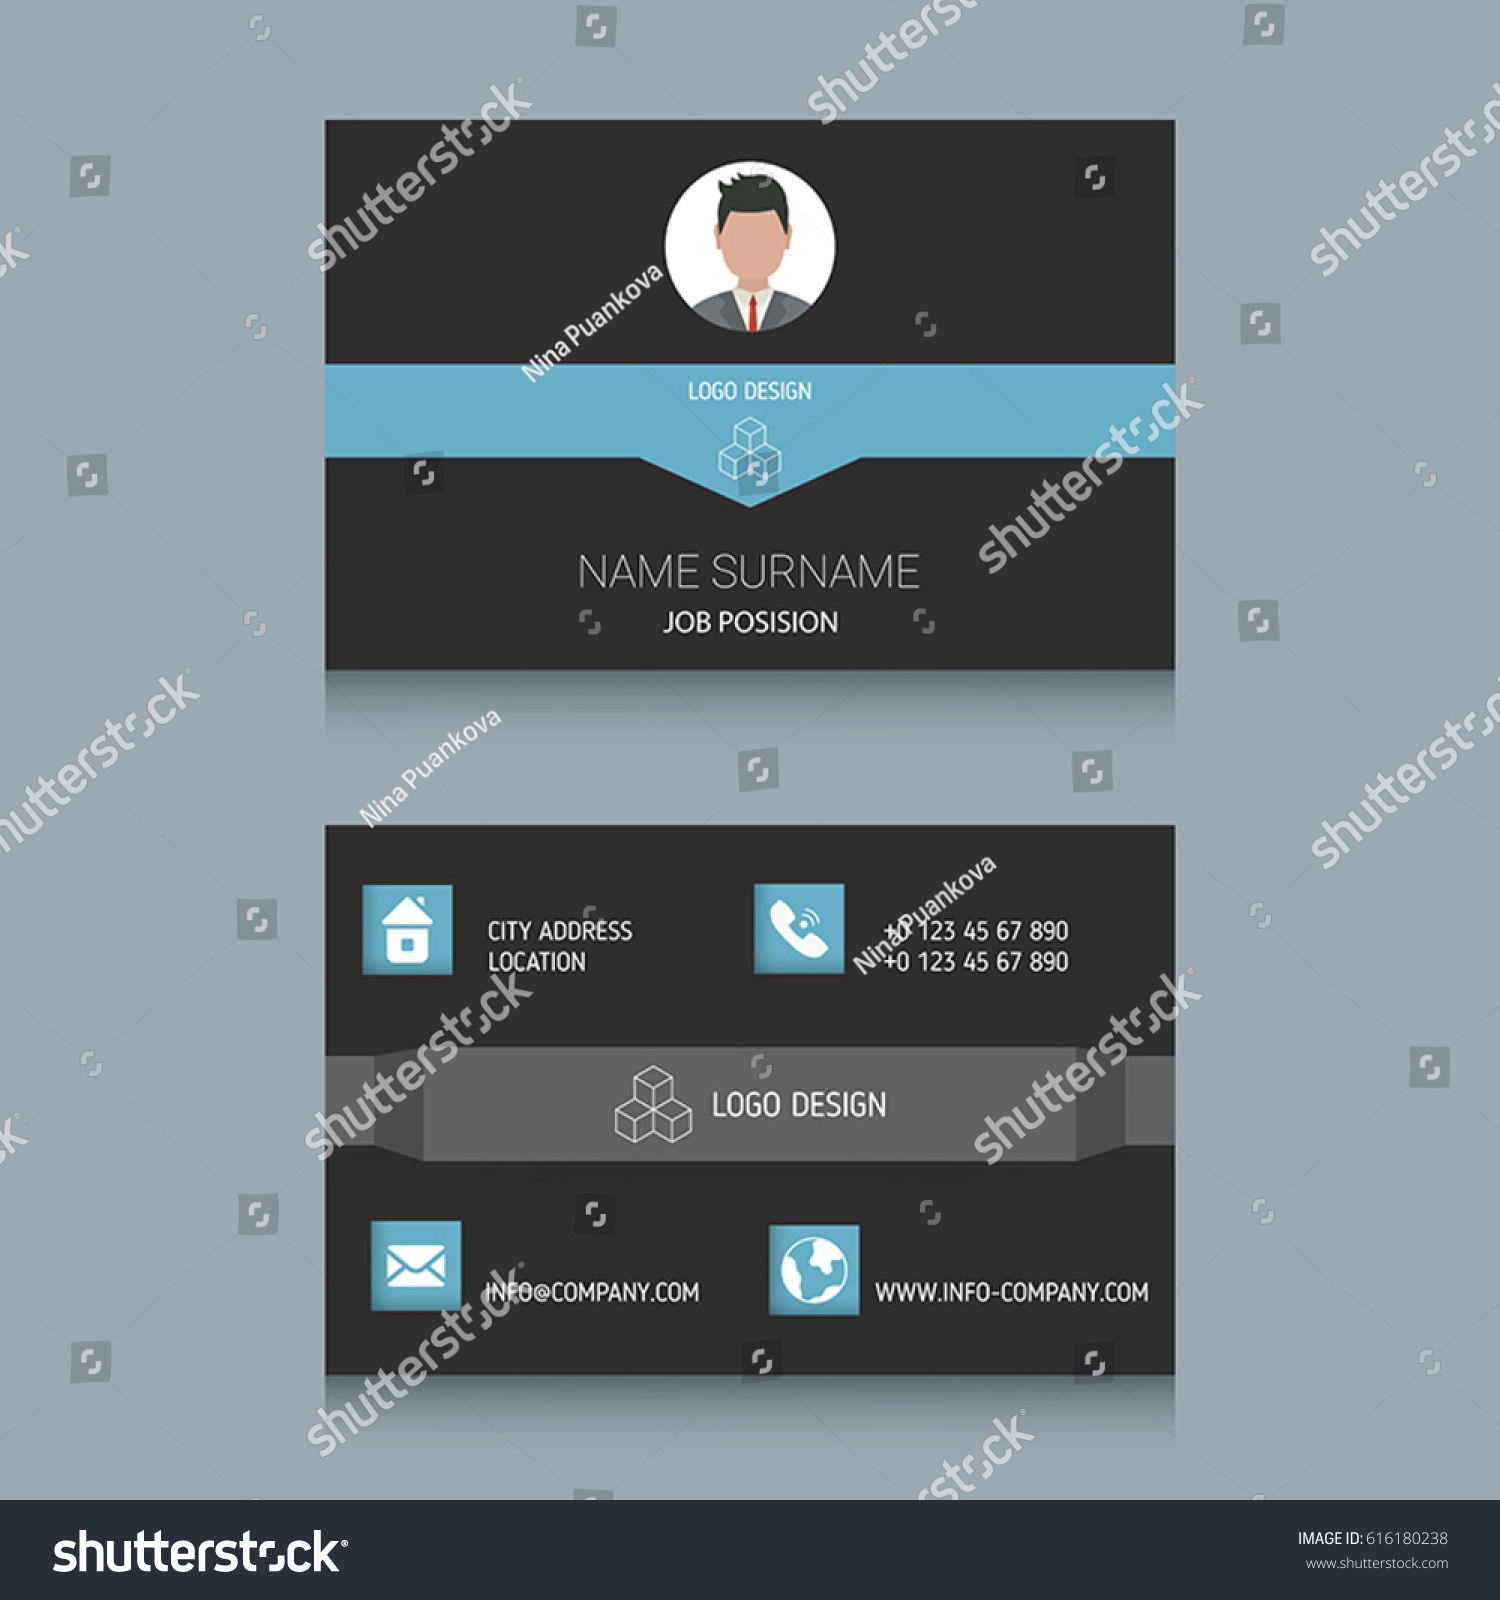 Business Card Designs Easy Adapt Business Stock Vector 616180238 ...